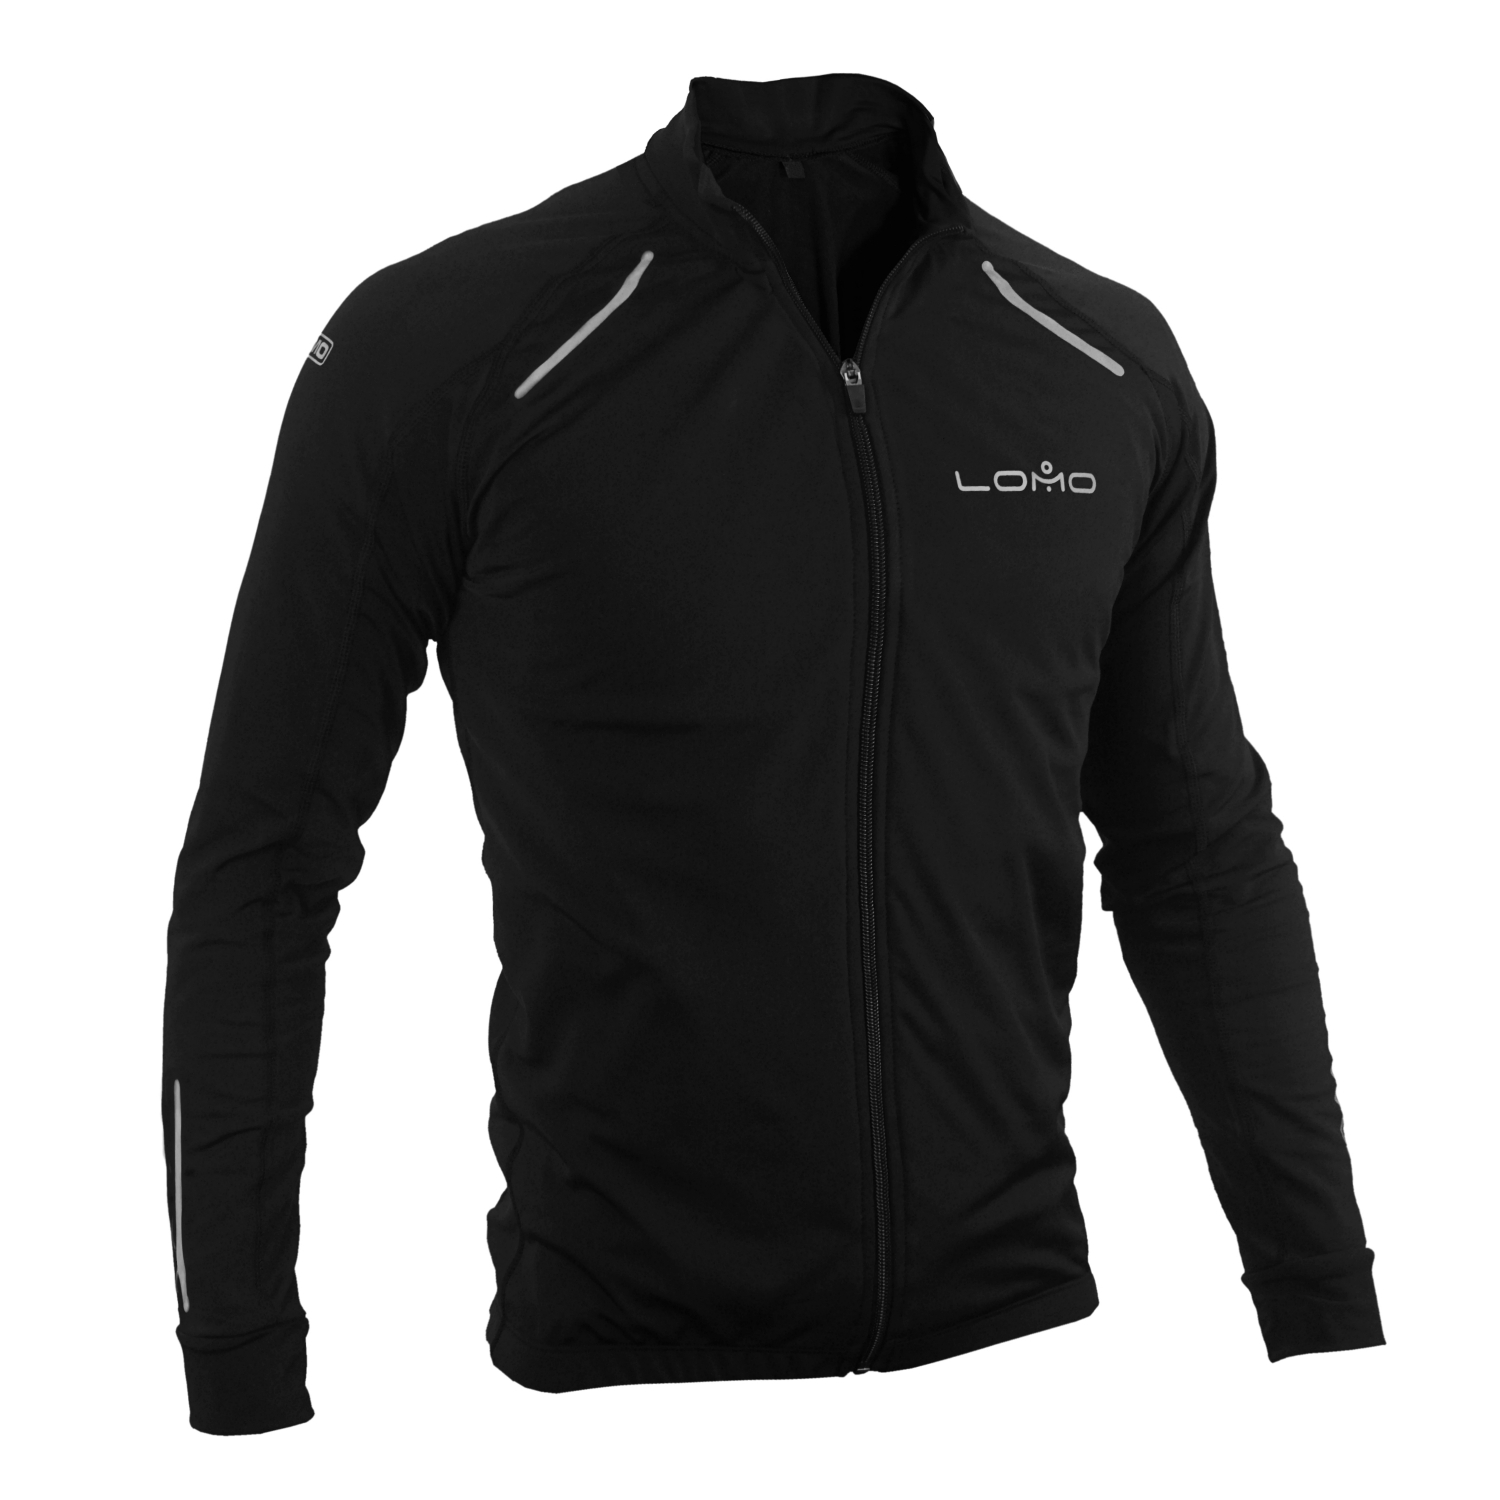 Winter Thermal Cycling Top - Full Zip